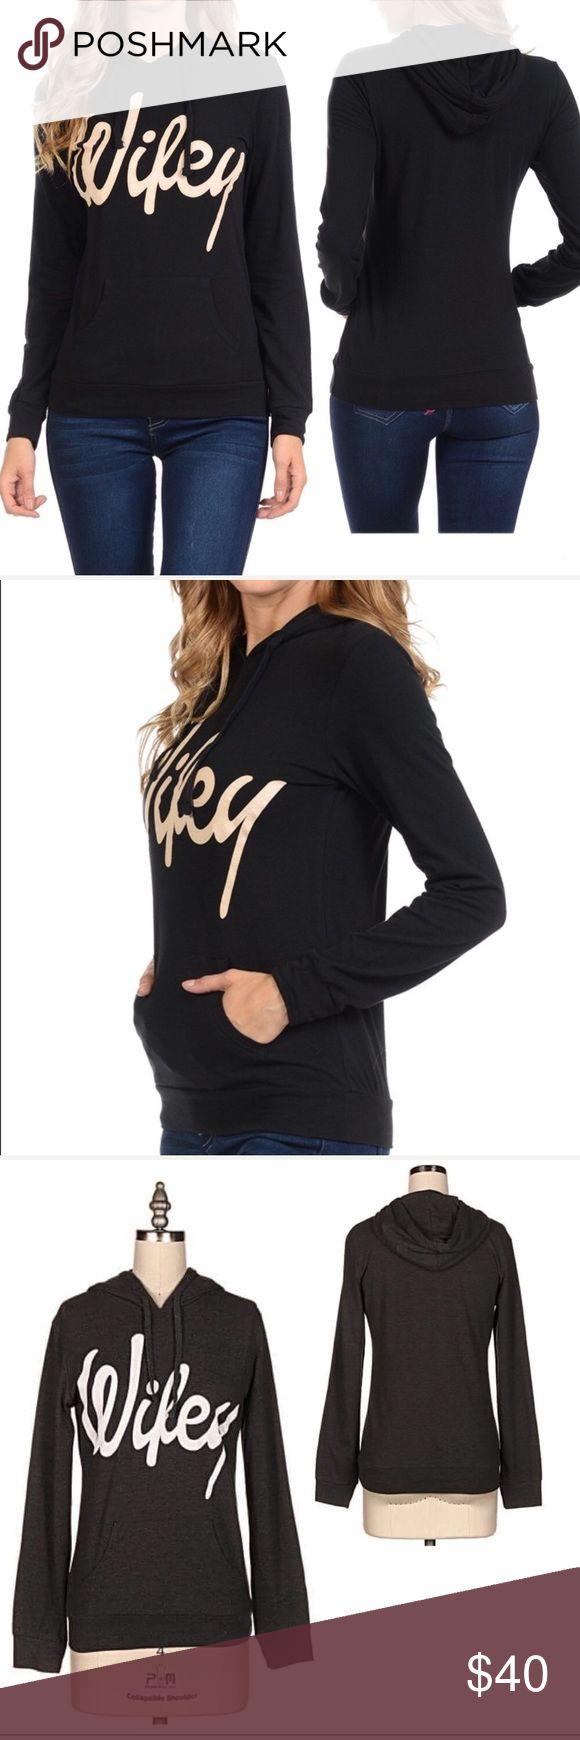 """Restock Wifey sweatshirt! Black Wifey Sweatshirt. Soft with a Comfortable fitting fit.  Material:63% Cotton 32% Polyester  5% Spandex Measurements Laying flat  S  - Bust 15"""" Length 22"""" M - Bust 18"""" Length 23.5"""" L  - Bust 19"""" Length 24.5"""" XL- Bust 20"""" Length 24.5""""                                              #bridal #wedding #gift #marriage #wife #ootd #fall #bonfire #camping #honeymoon #bridalshower #freeshipping #fiance #movie night Tops Sweatshirts & Hoodies"""